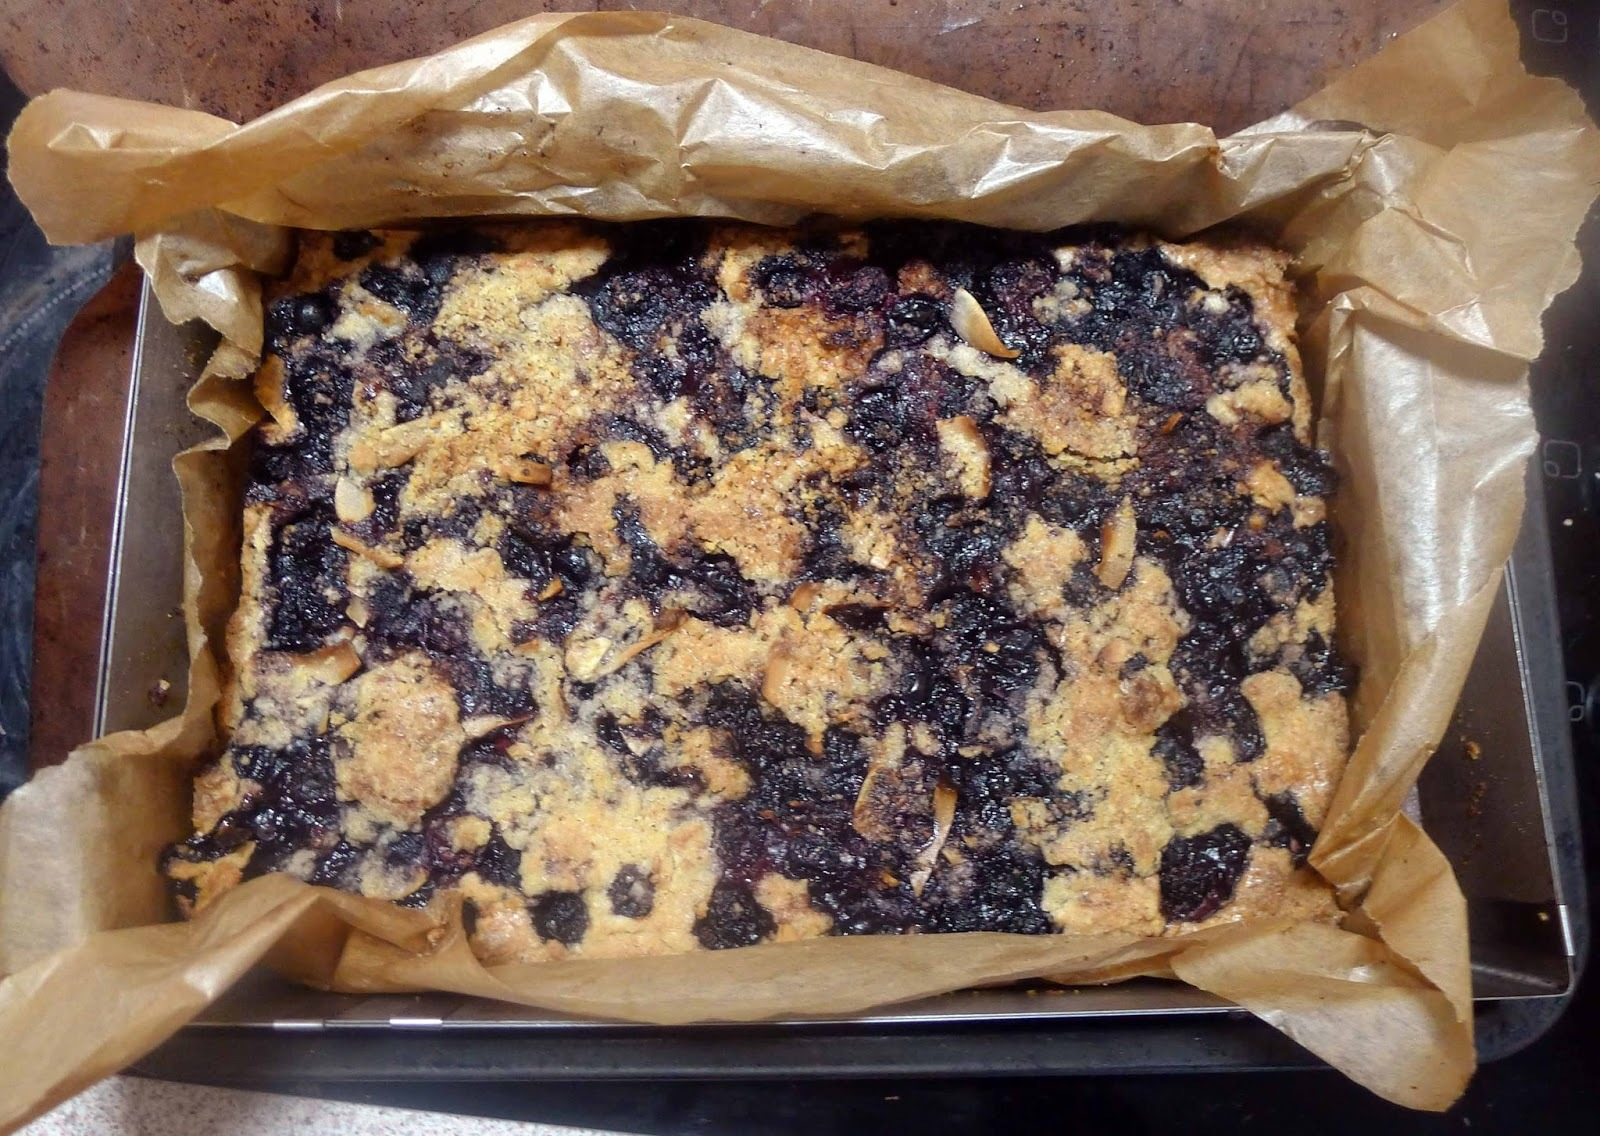 Blueberry Hazelnut Bars